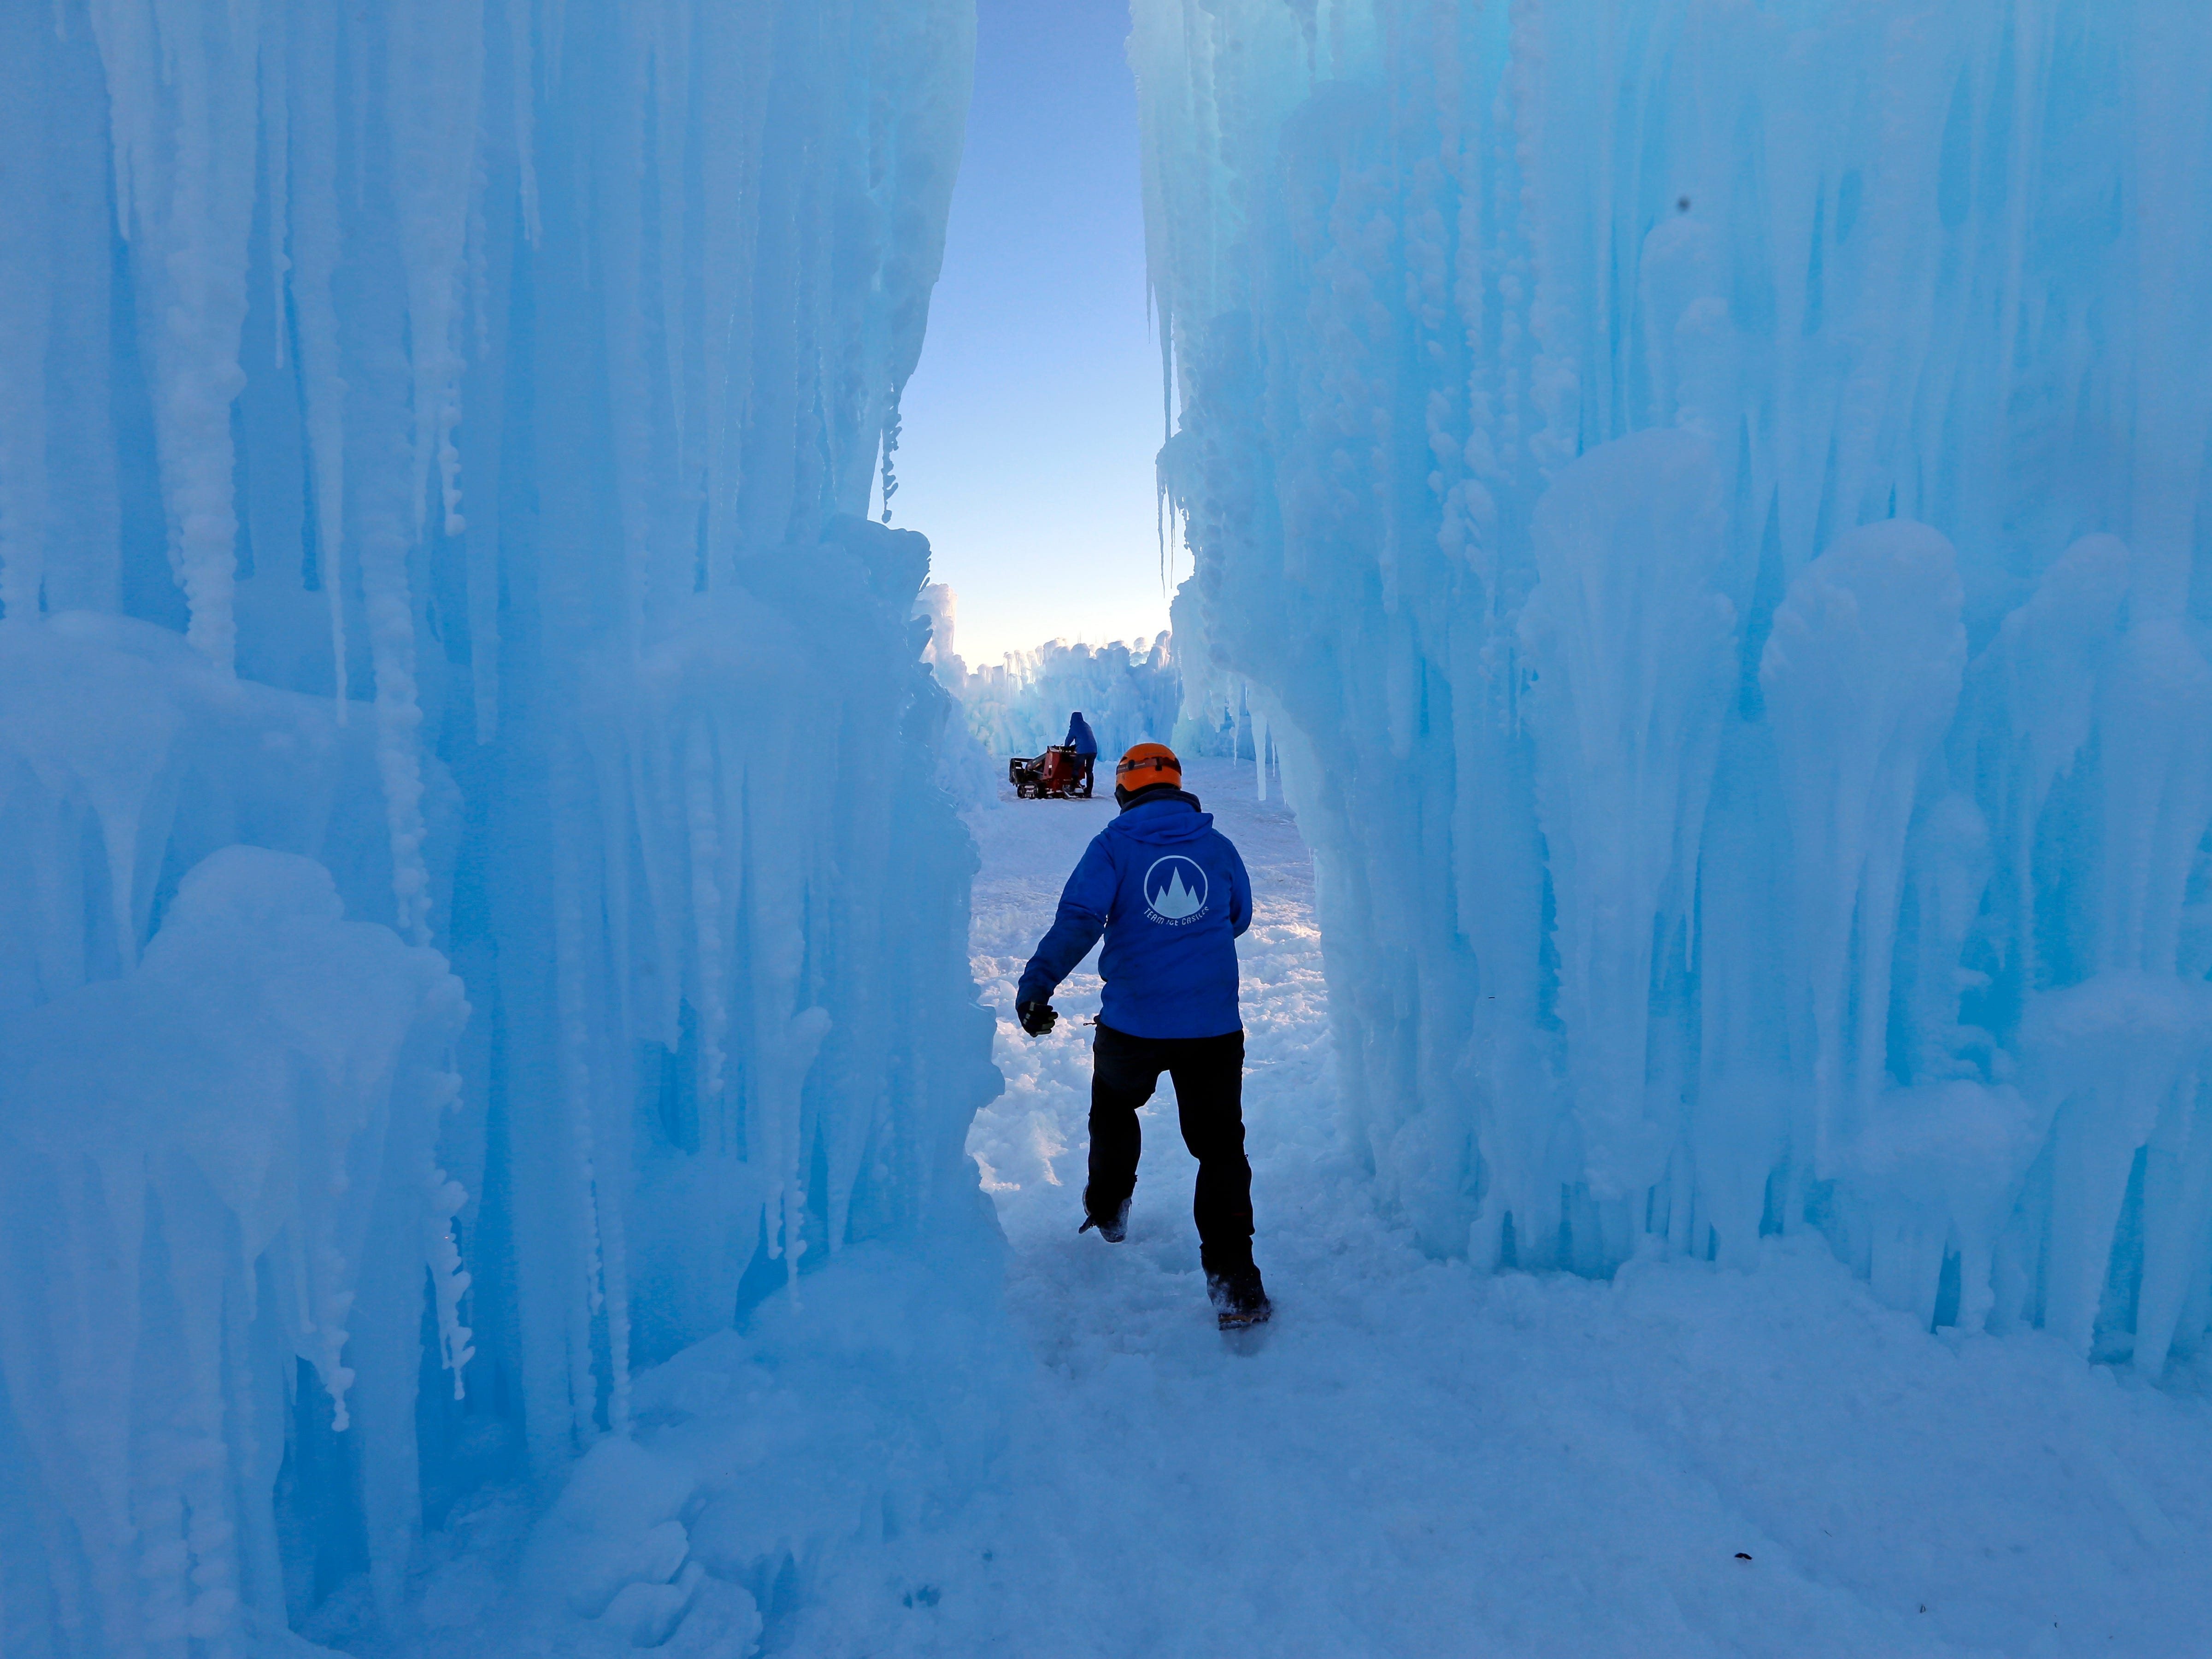 Midway Ice Castles take shape as artisans construct popular winter attraction Jan. 2, 2019, in Midway, Utah.